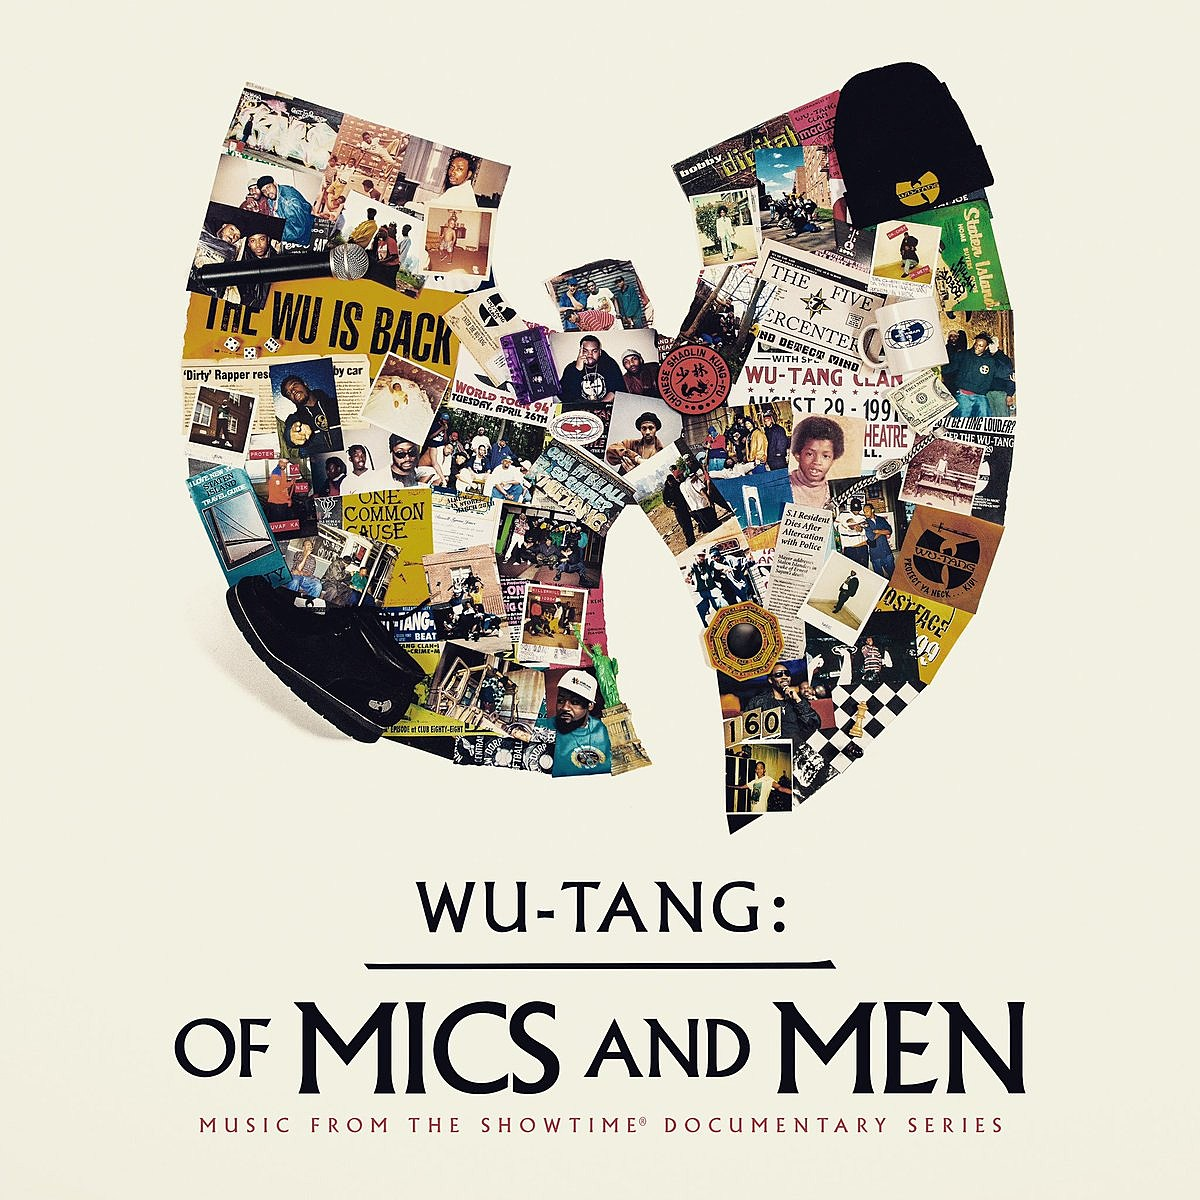 Wu-Tang Clan releasing new EP inspired by Showtime documentary series